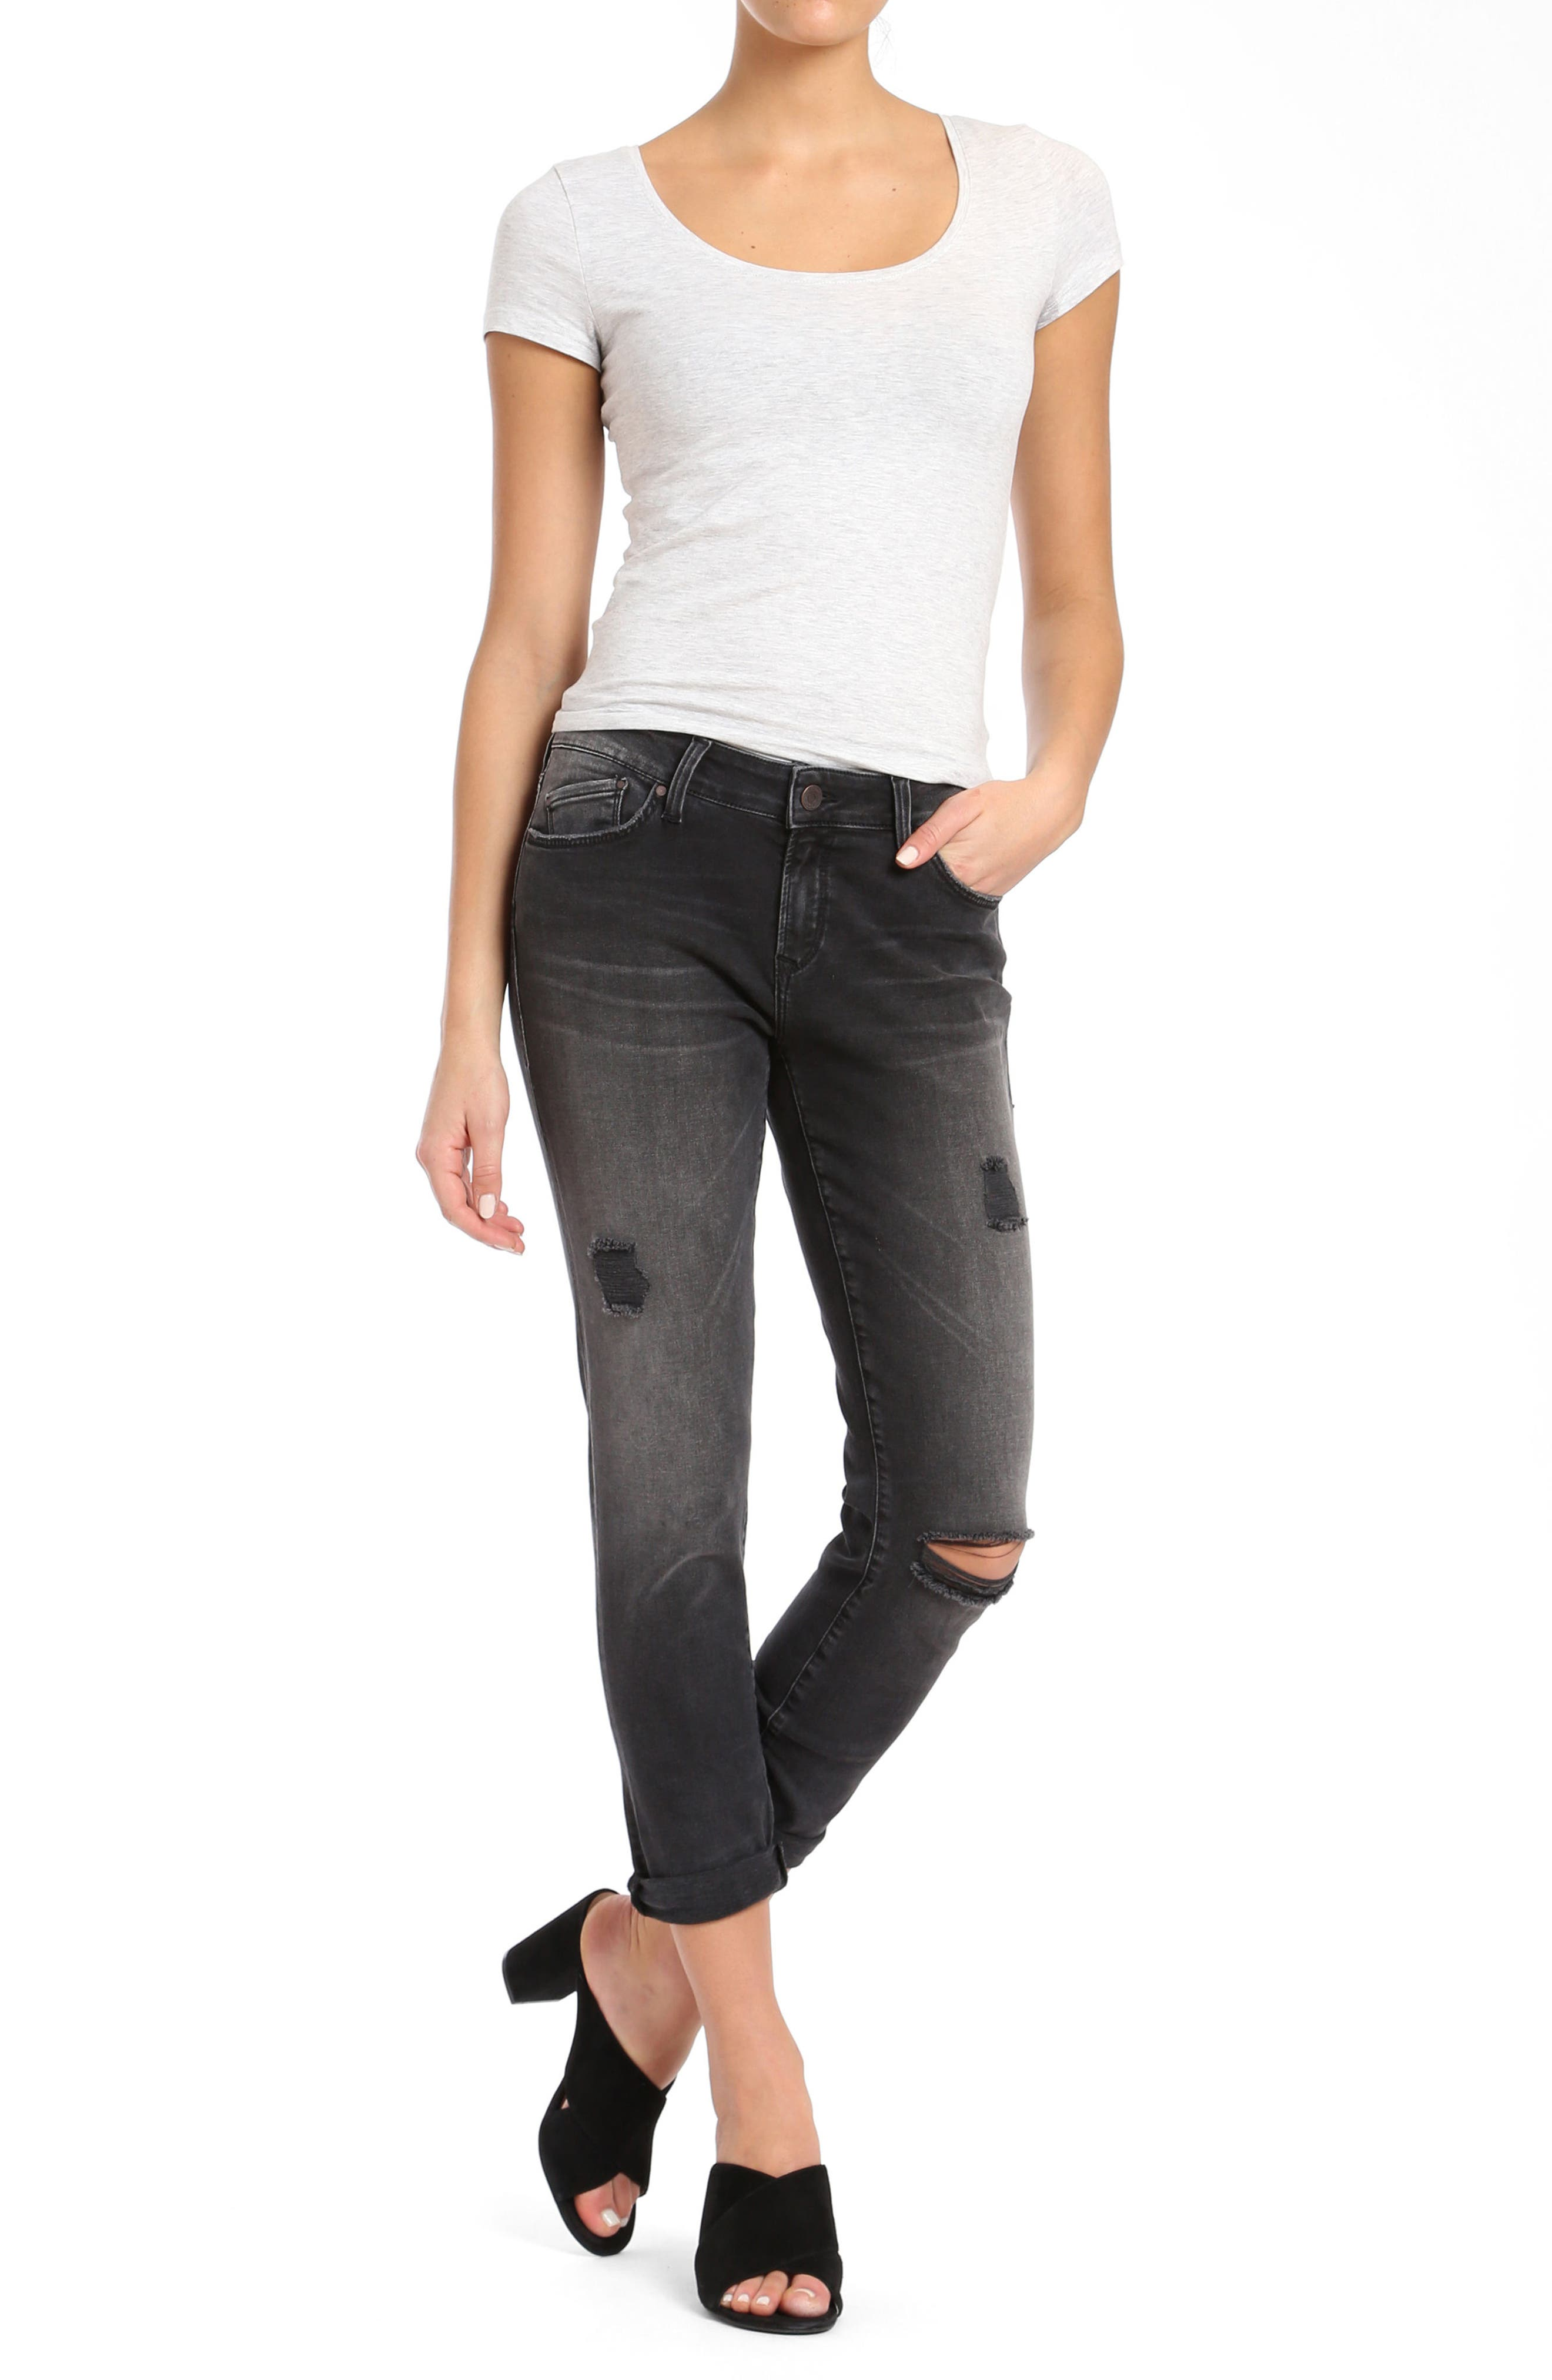 Alissa Super Skinny Ankle Jeans,                             Alternate thumbnail 2, color,                             Smoke Ripped Nolita